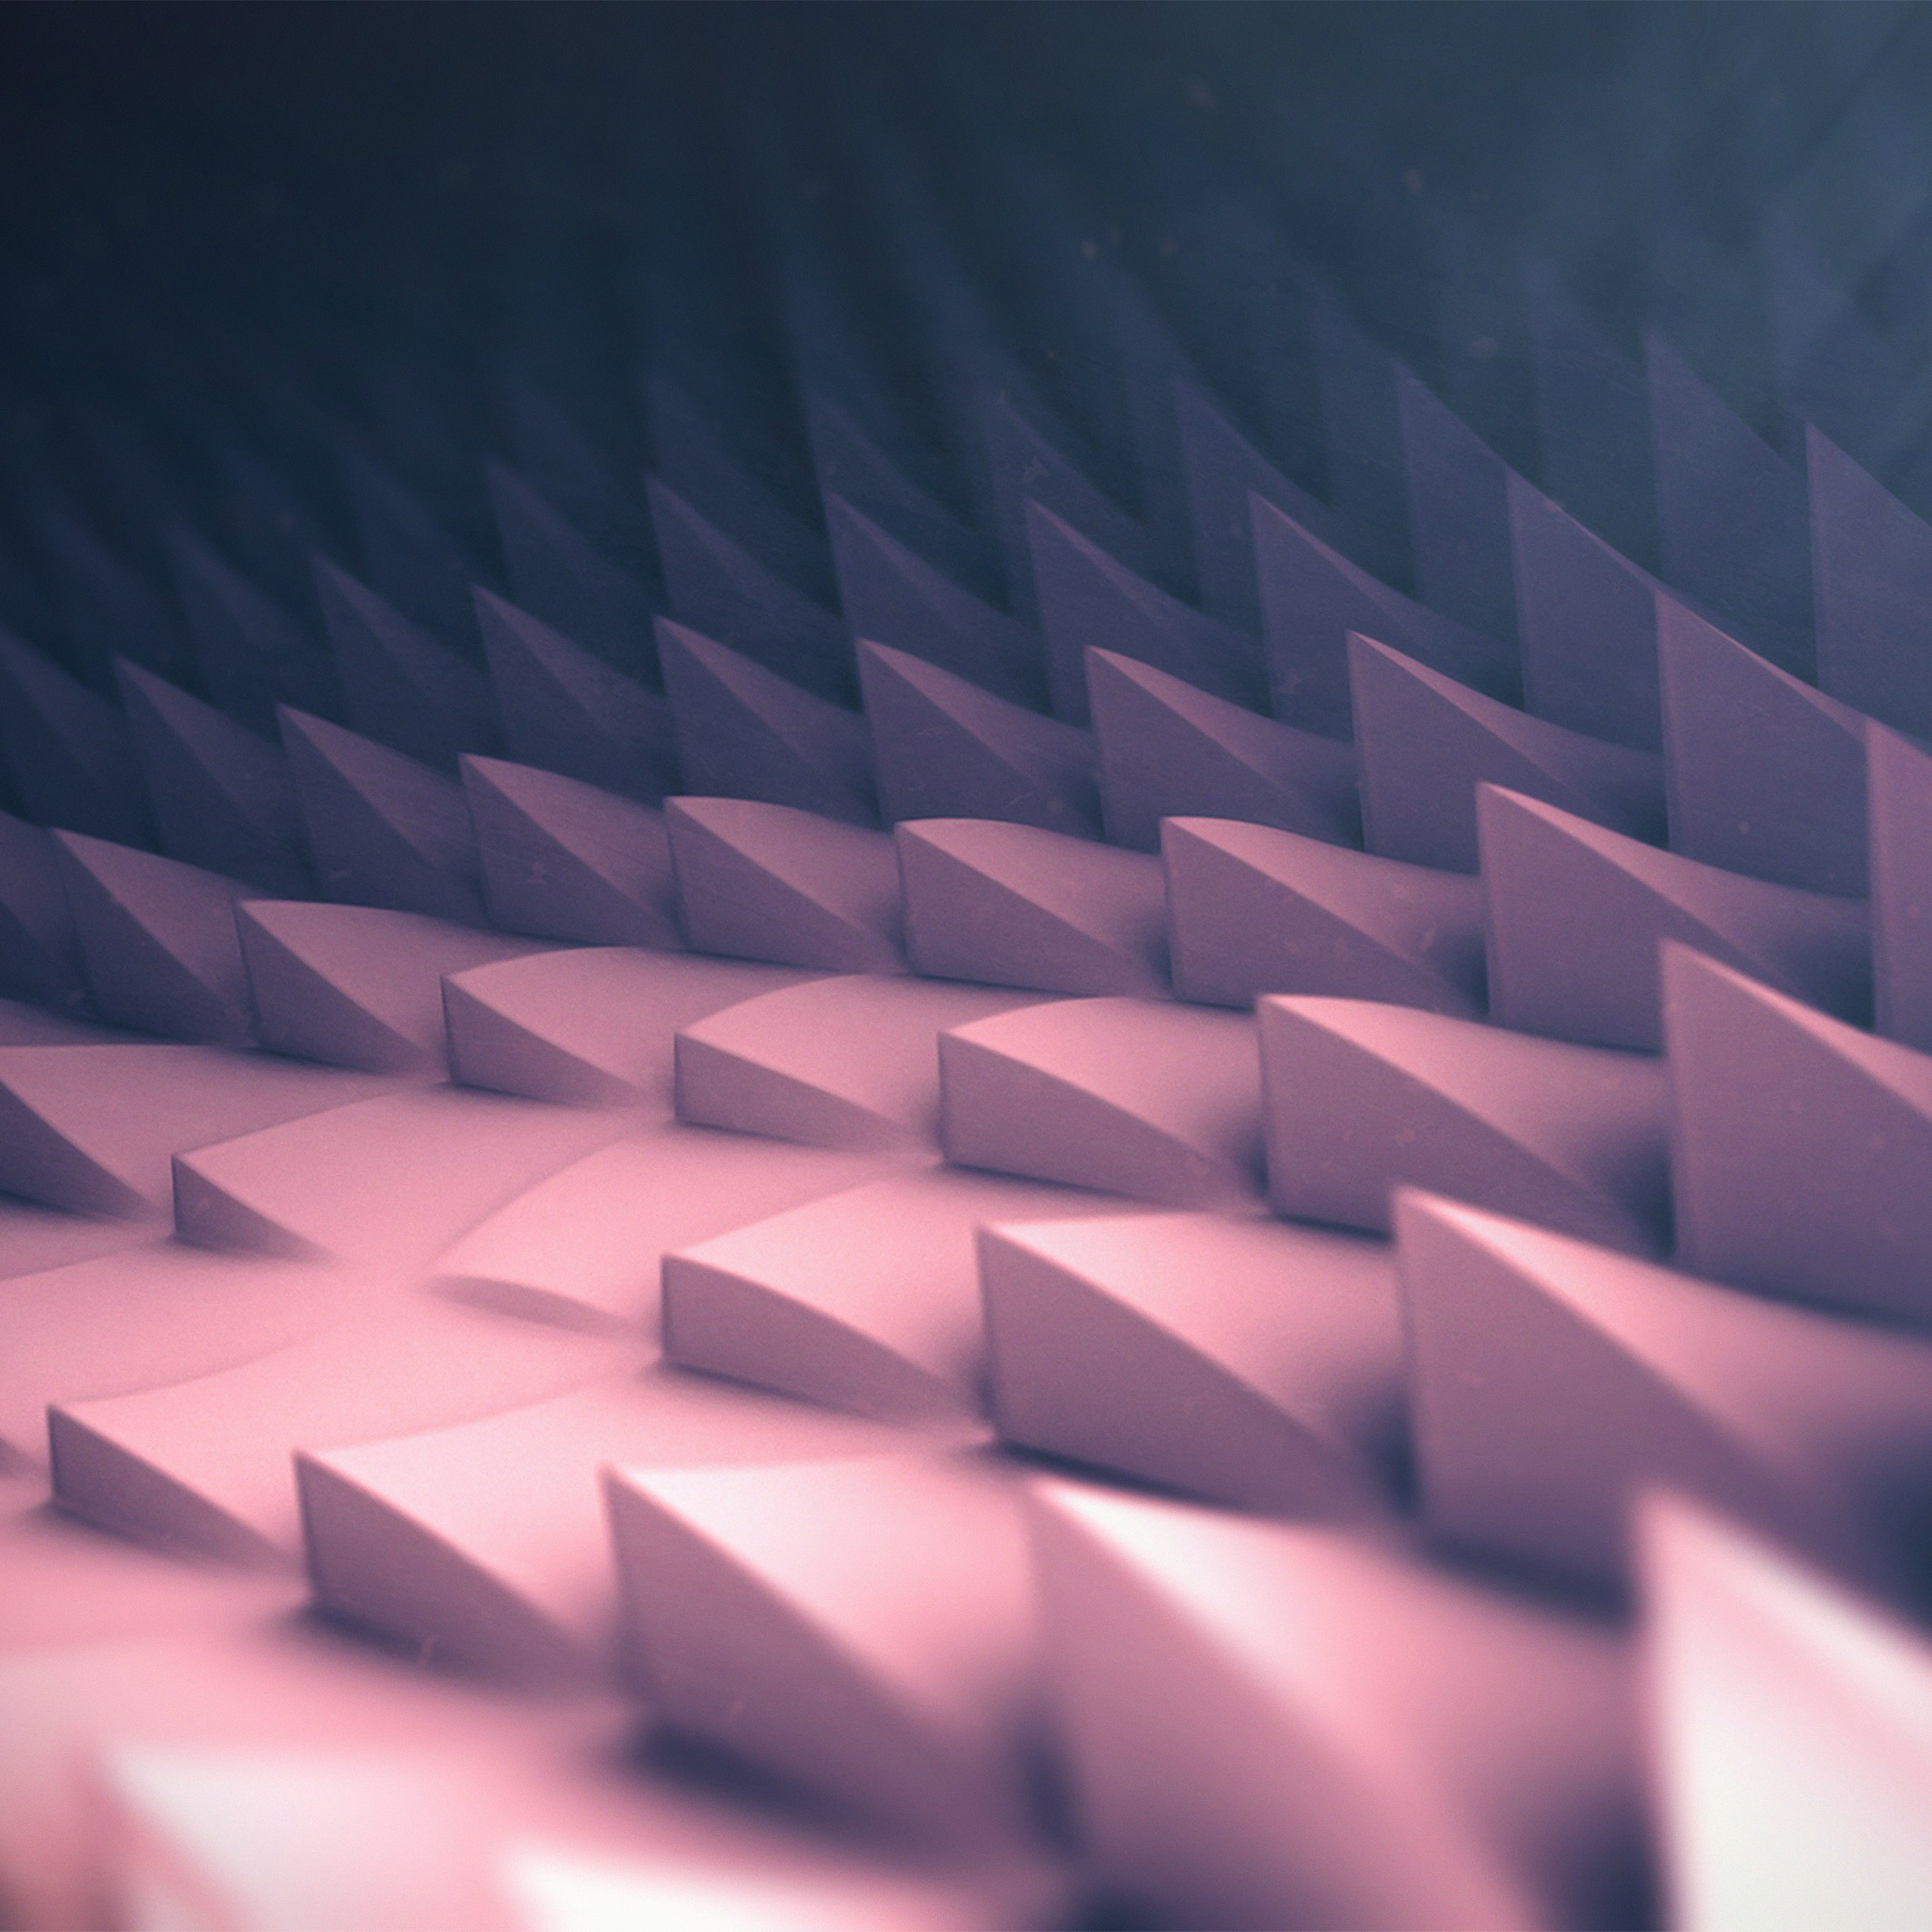 3d-art-pink-blue-digital-graphic-pattern-40-wallpaper